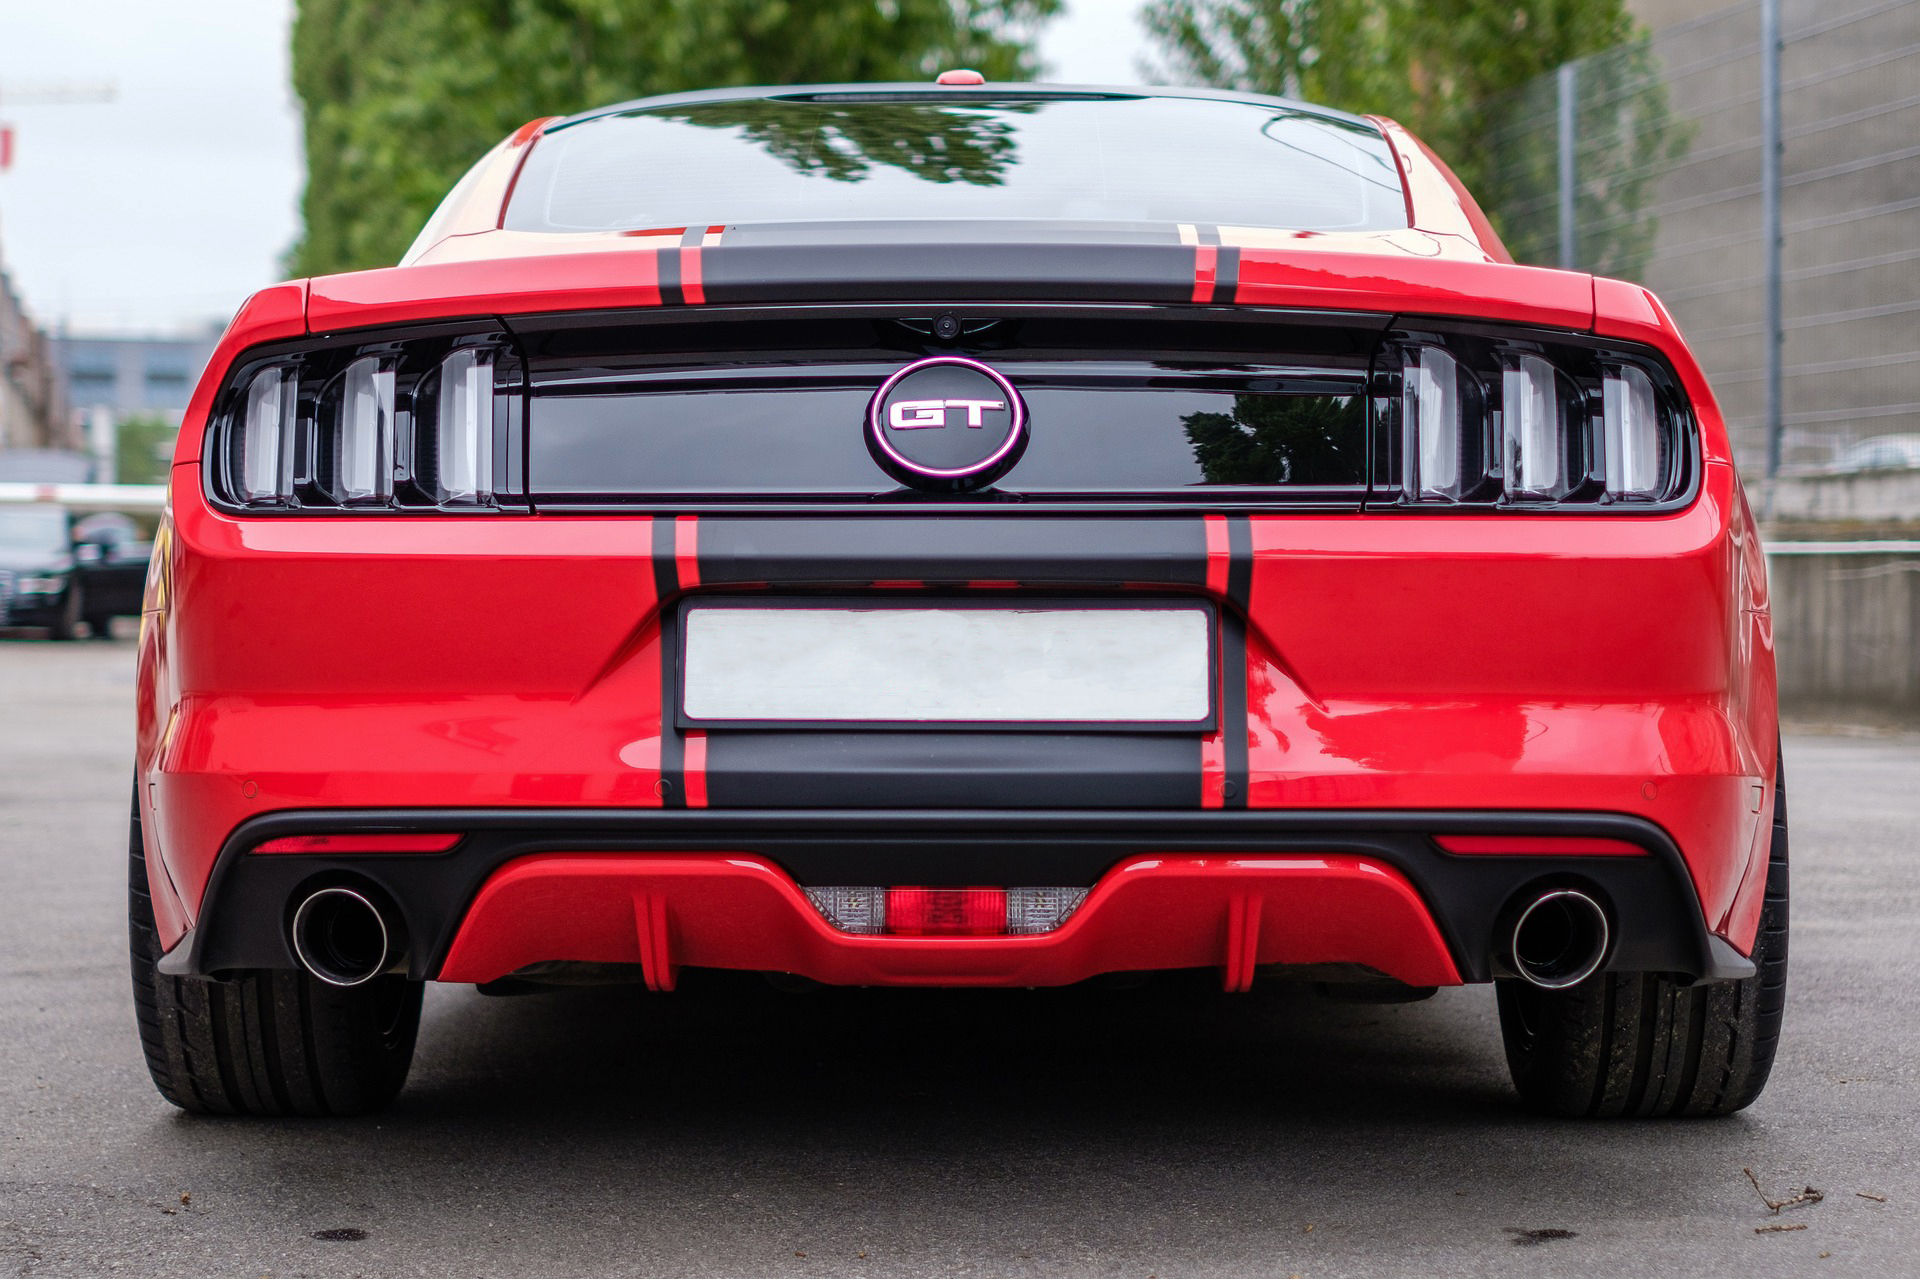 Ford Mustang GT 2018 red